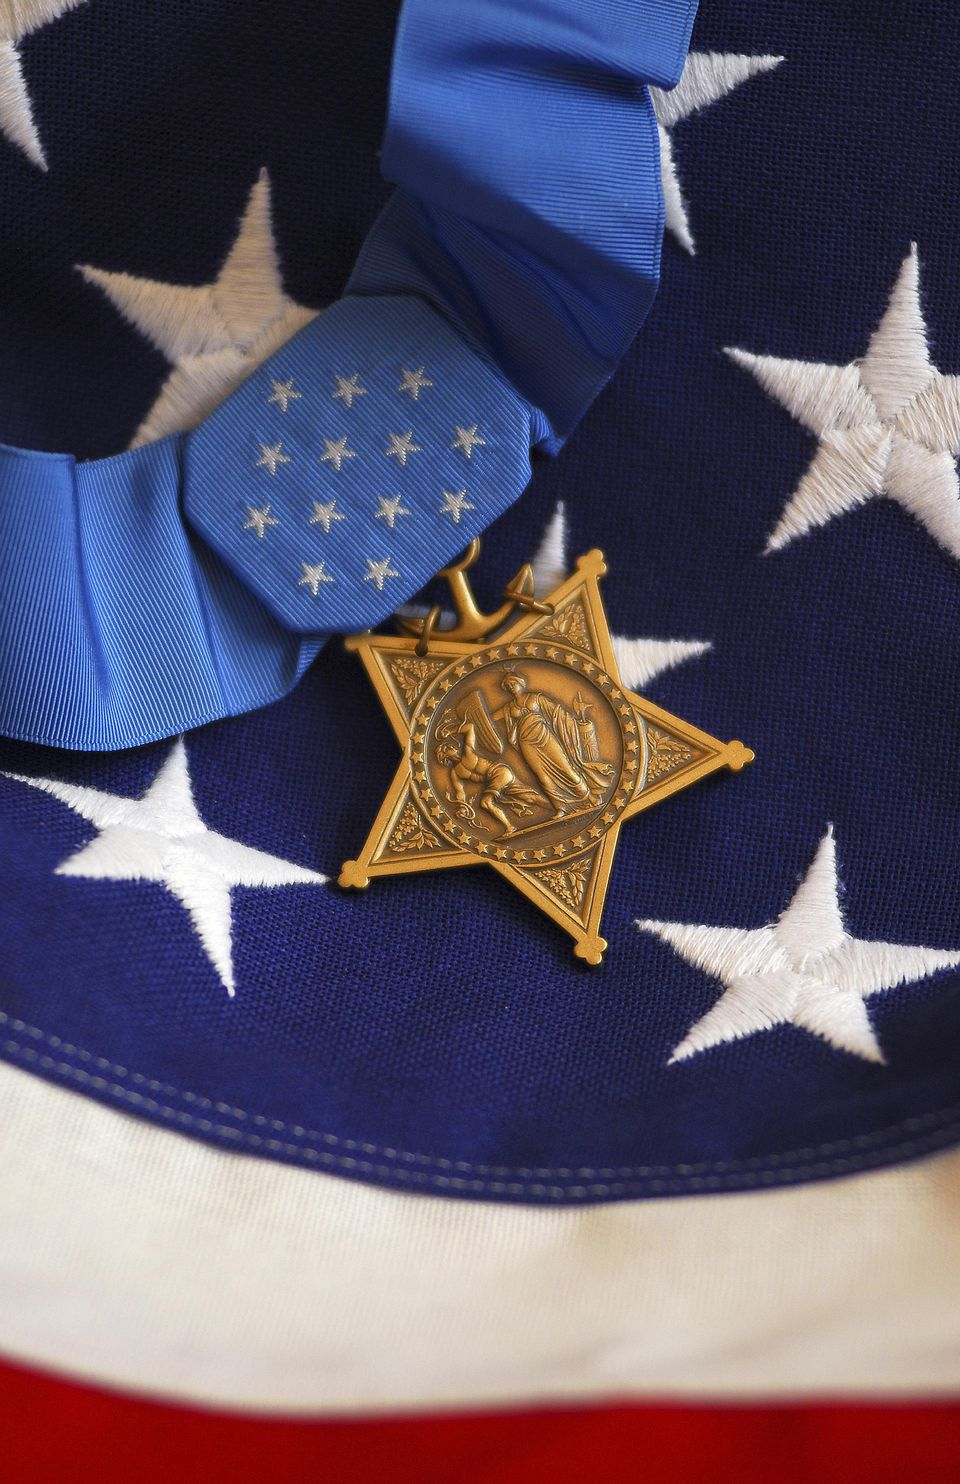 medal of honor and flag